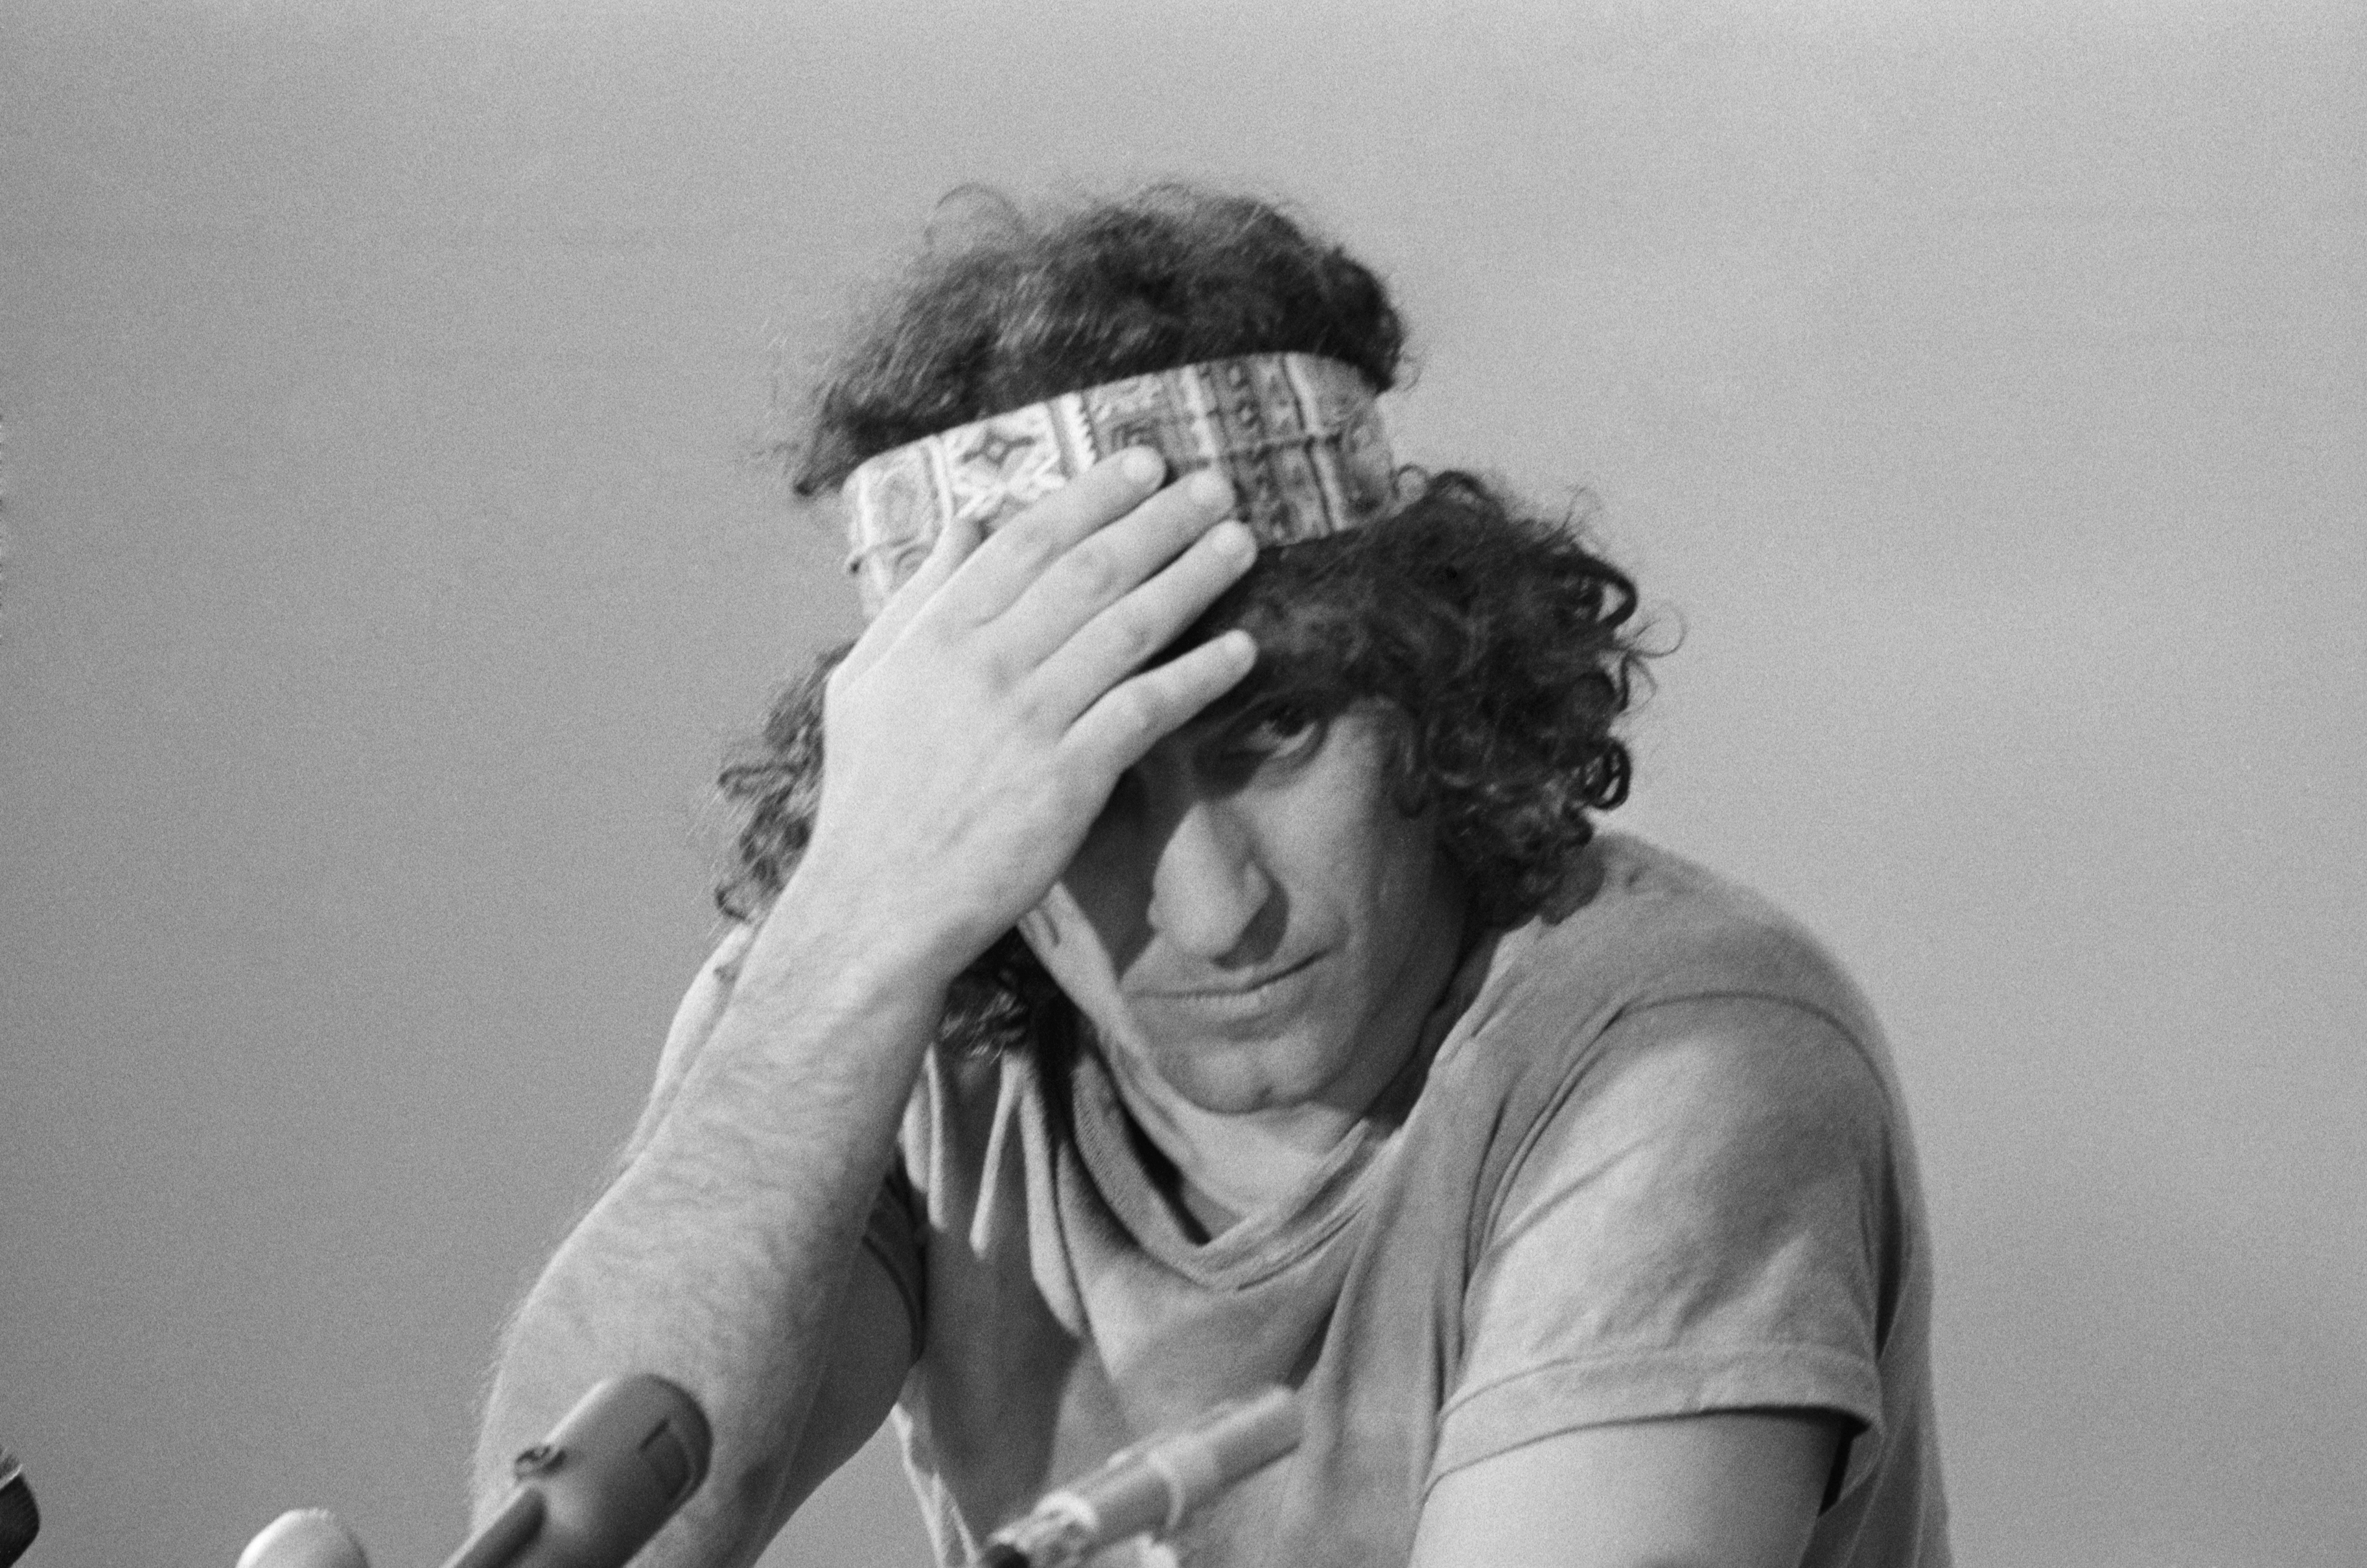 Abbie Hoffman adjusts his headband during a news conference about the trial